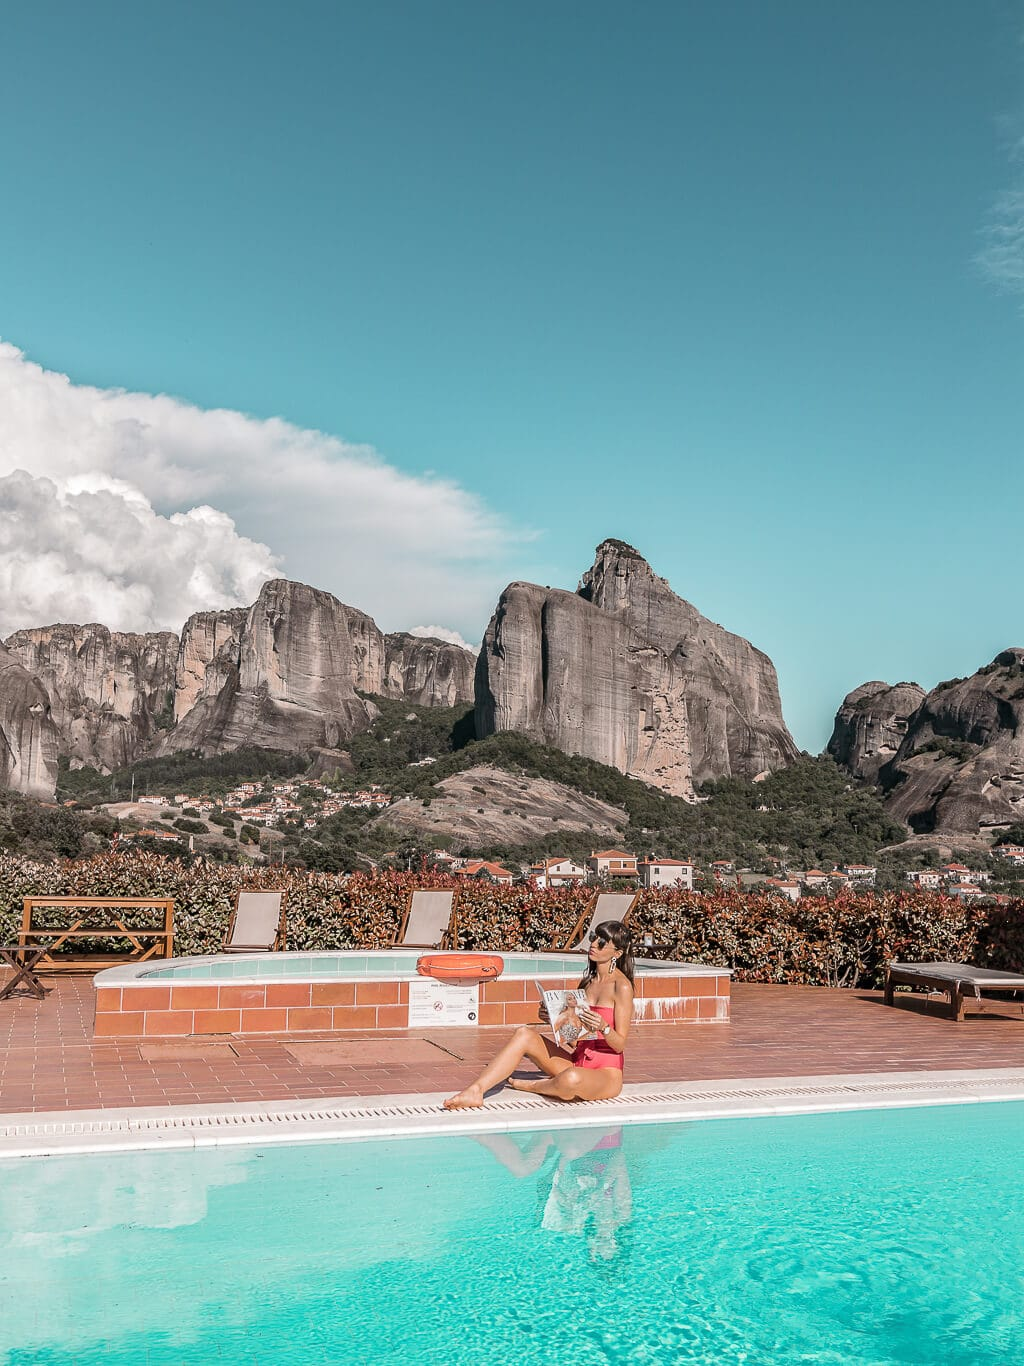 Greece is more than islands - Thessaloniki, Meteora and Chalkidiki - are off the beaten path greek gems. Click through to get inspired with these 20 pictures from North Greece!